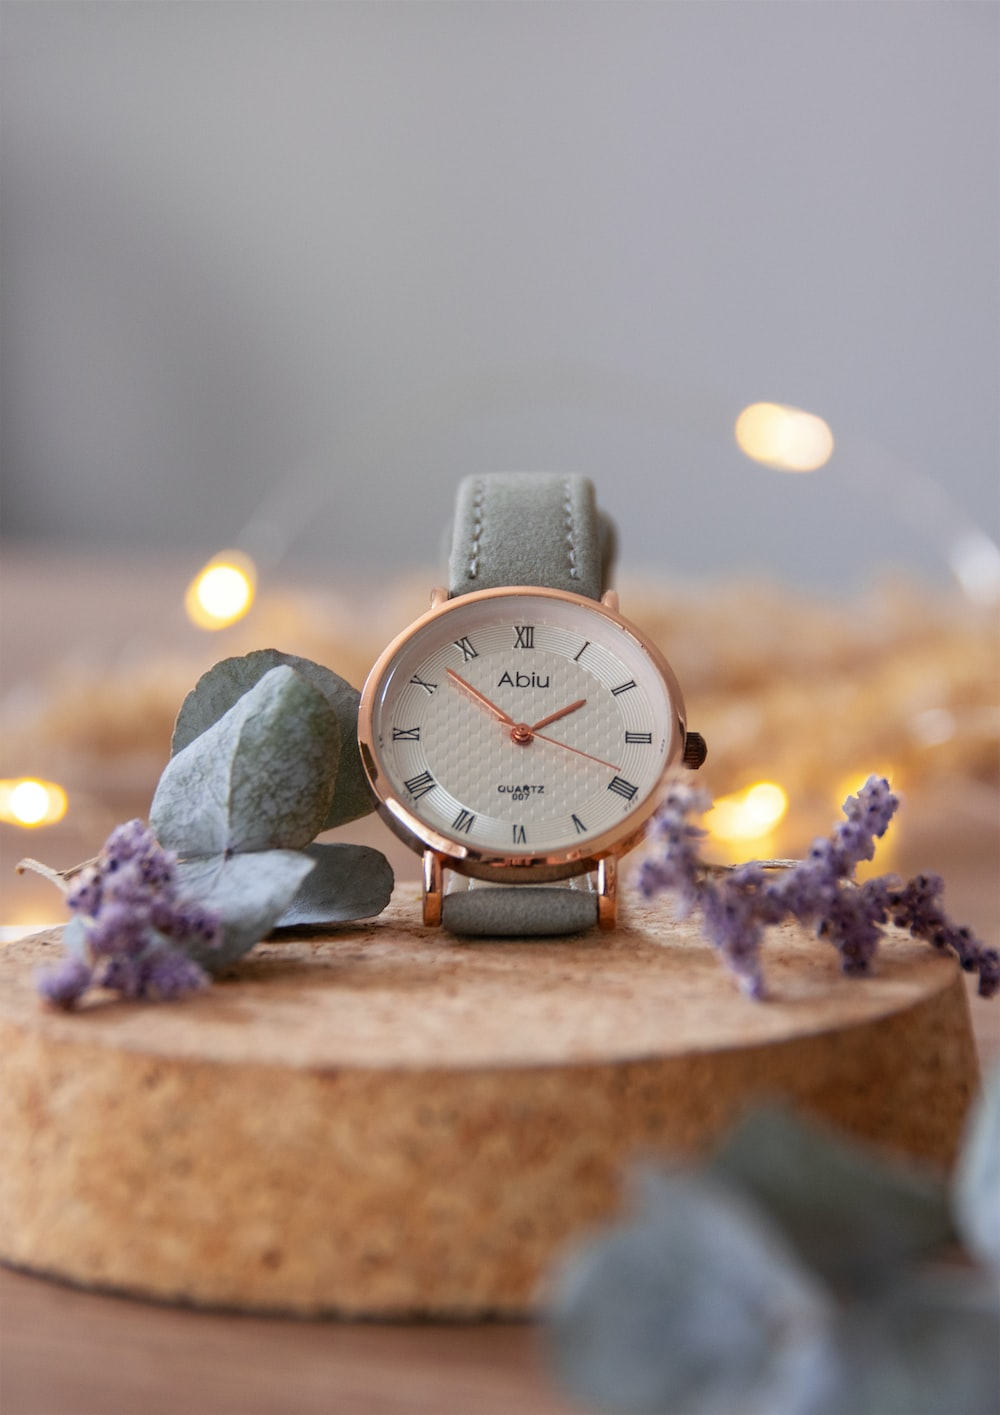 silver round analog watch on brown wooden table